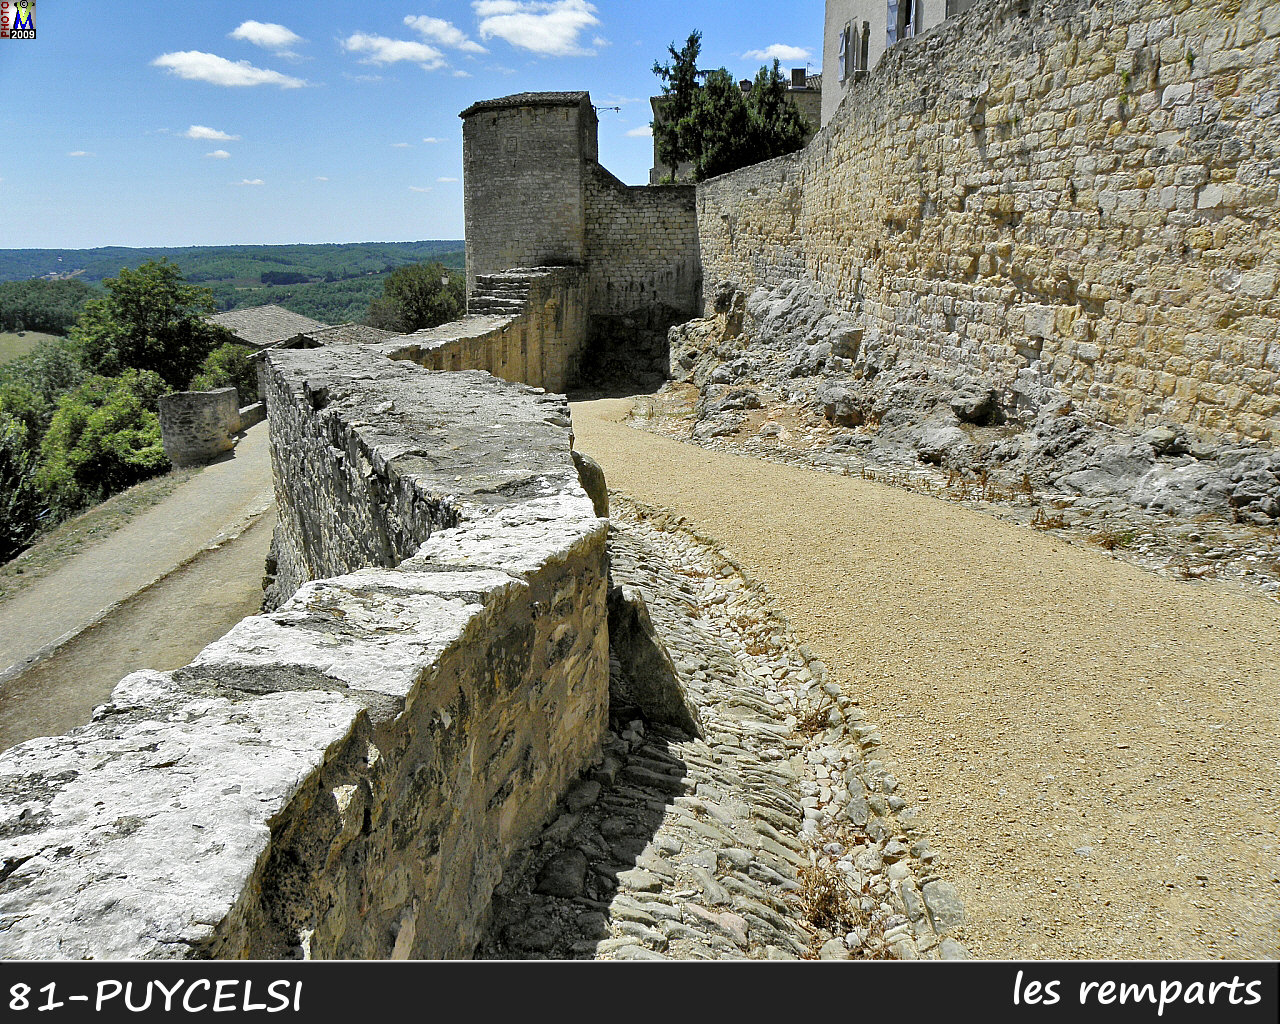 81PUYCELSI_remparts_108.jpg